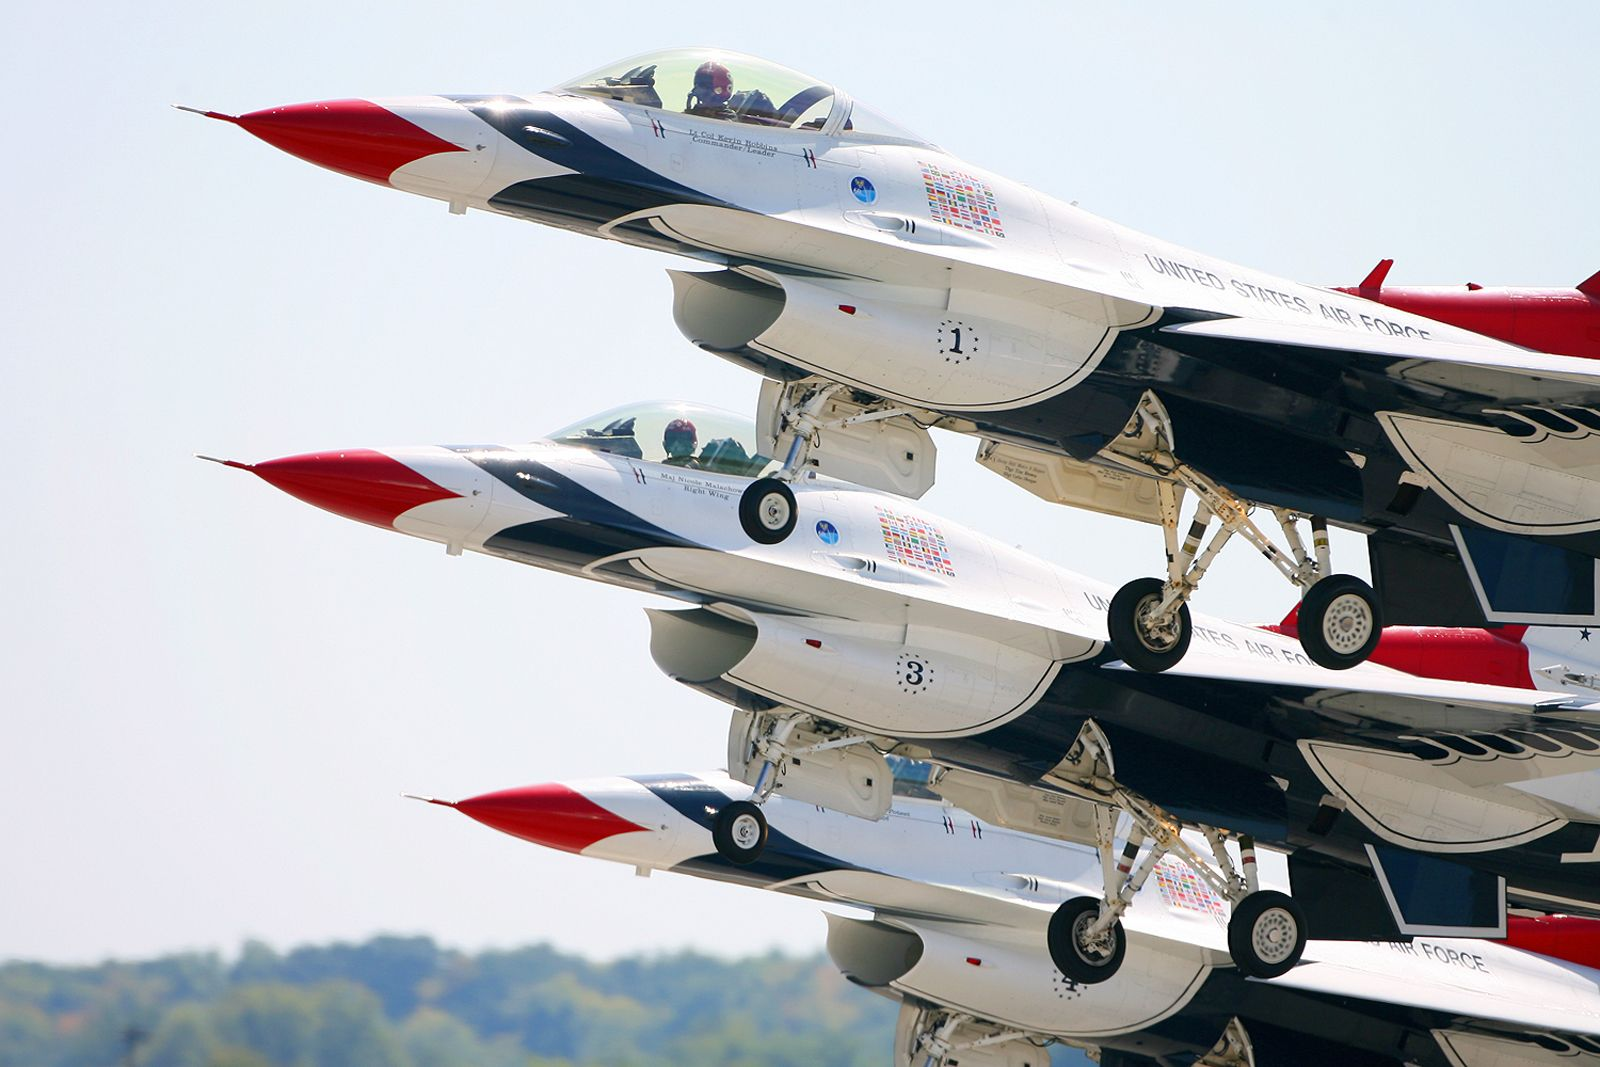 The Air Force Thunderbirds, coming to Thunder over